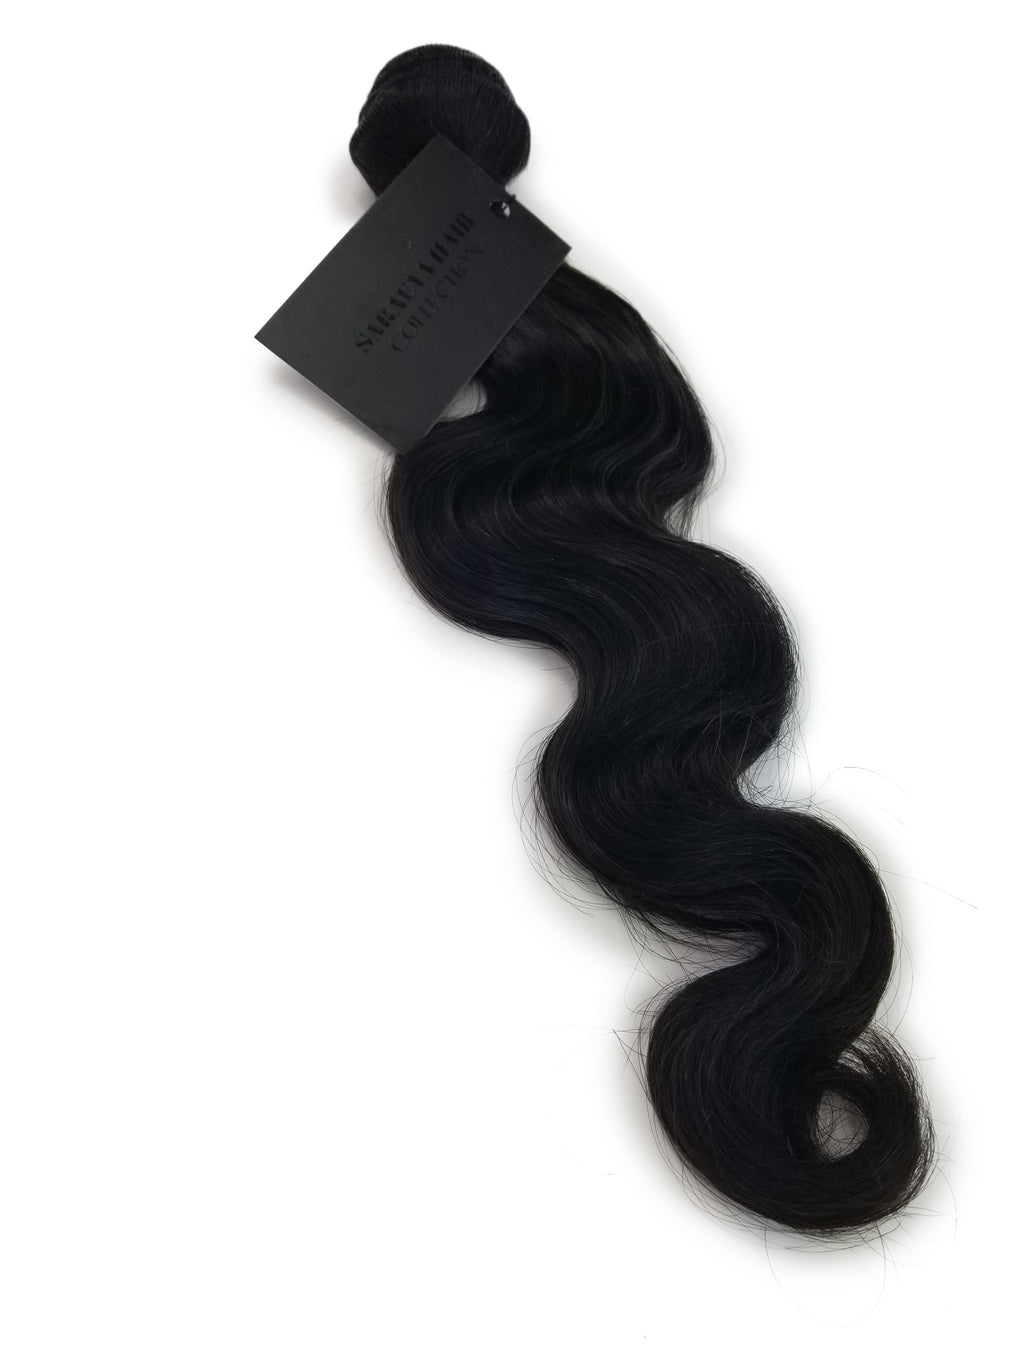 BODY WAVE - WEFTS